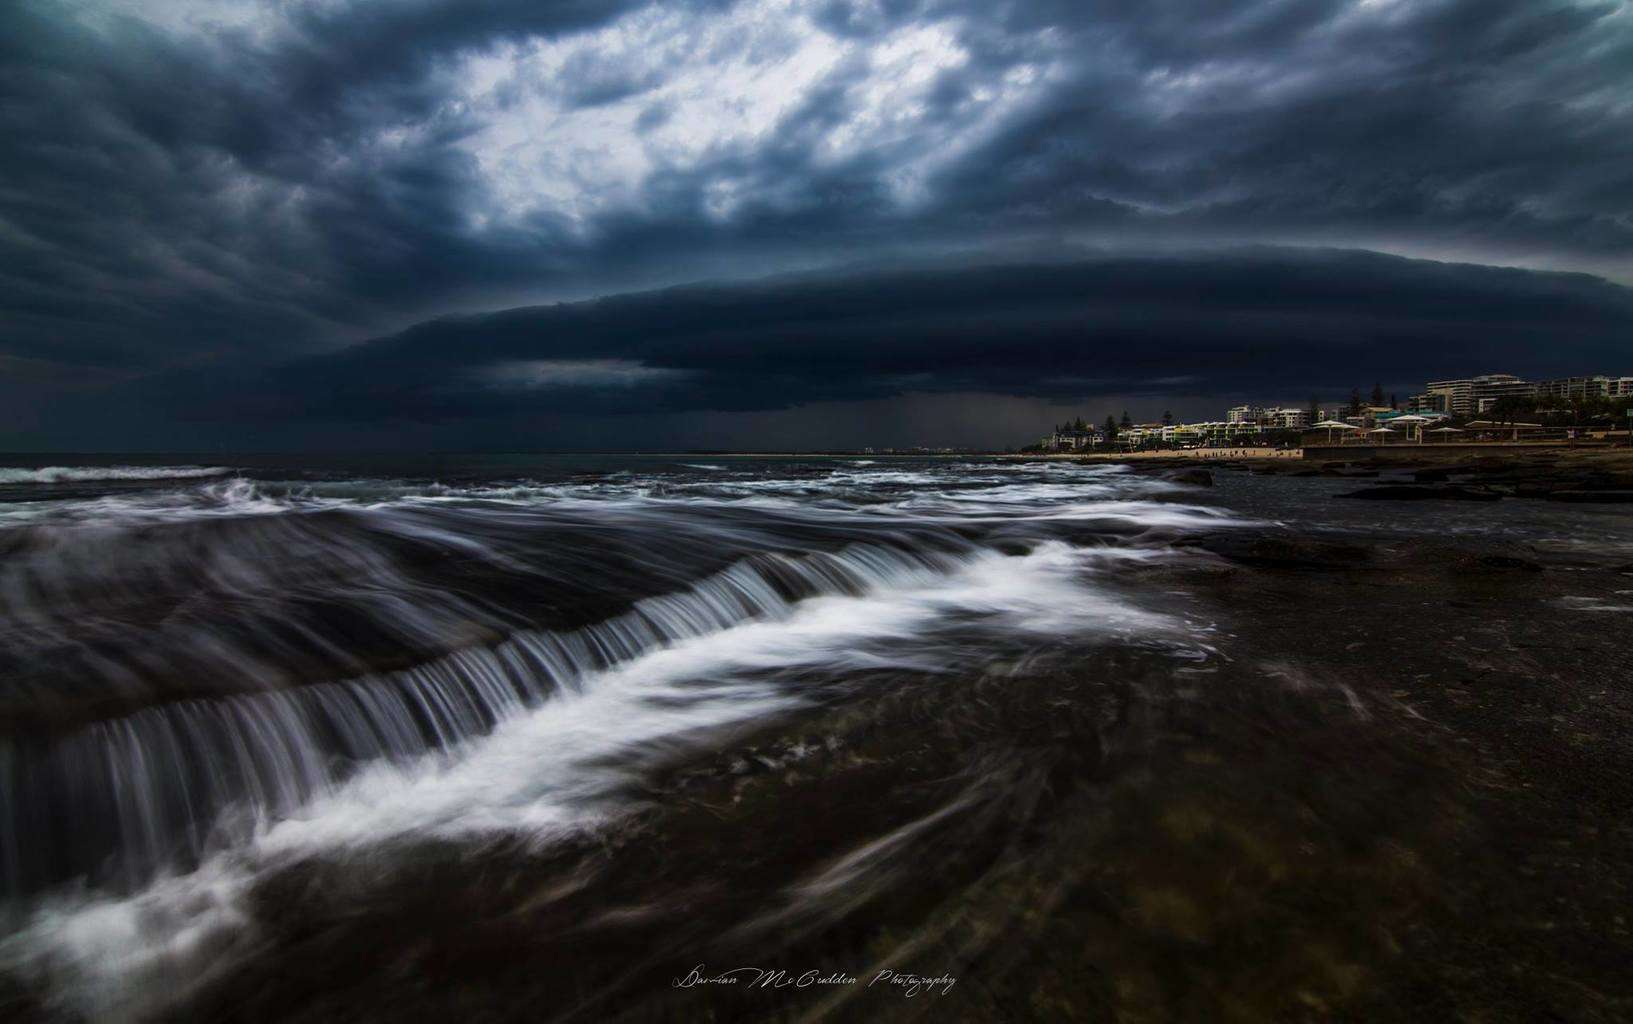 Last chase of 2014, I'm a landscape photographer as you can tell i like to have a good composition with my storm images.  This was taken in December last year at Kings Beach, Australia.  Enjoy, Thanks for looking!